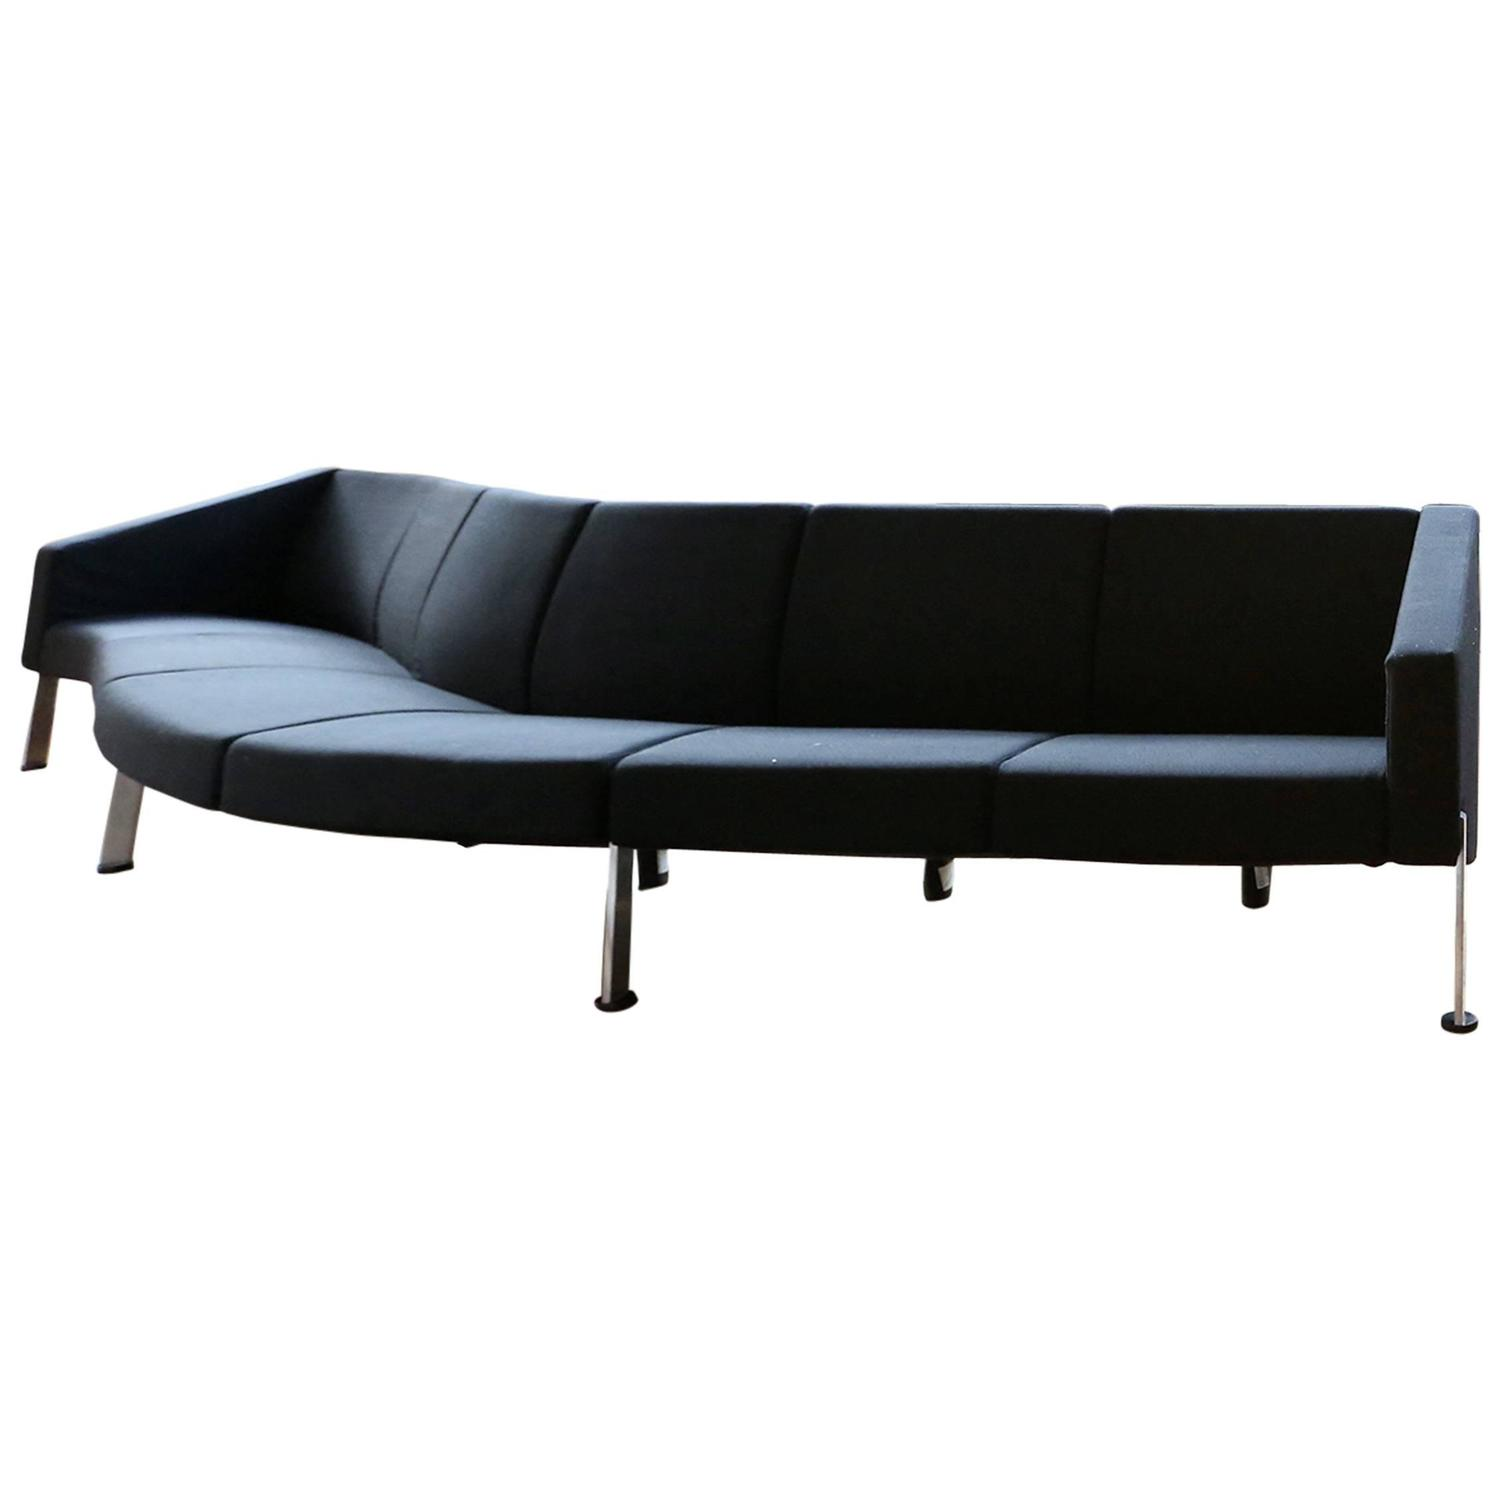 Huge Decision Sofa by Fritz Hansen For Sale at 1stdibs